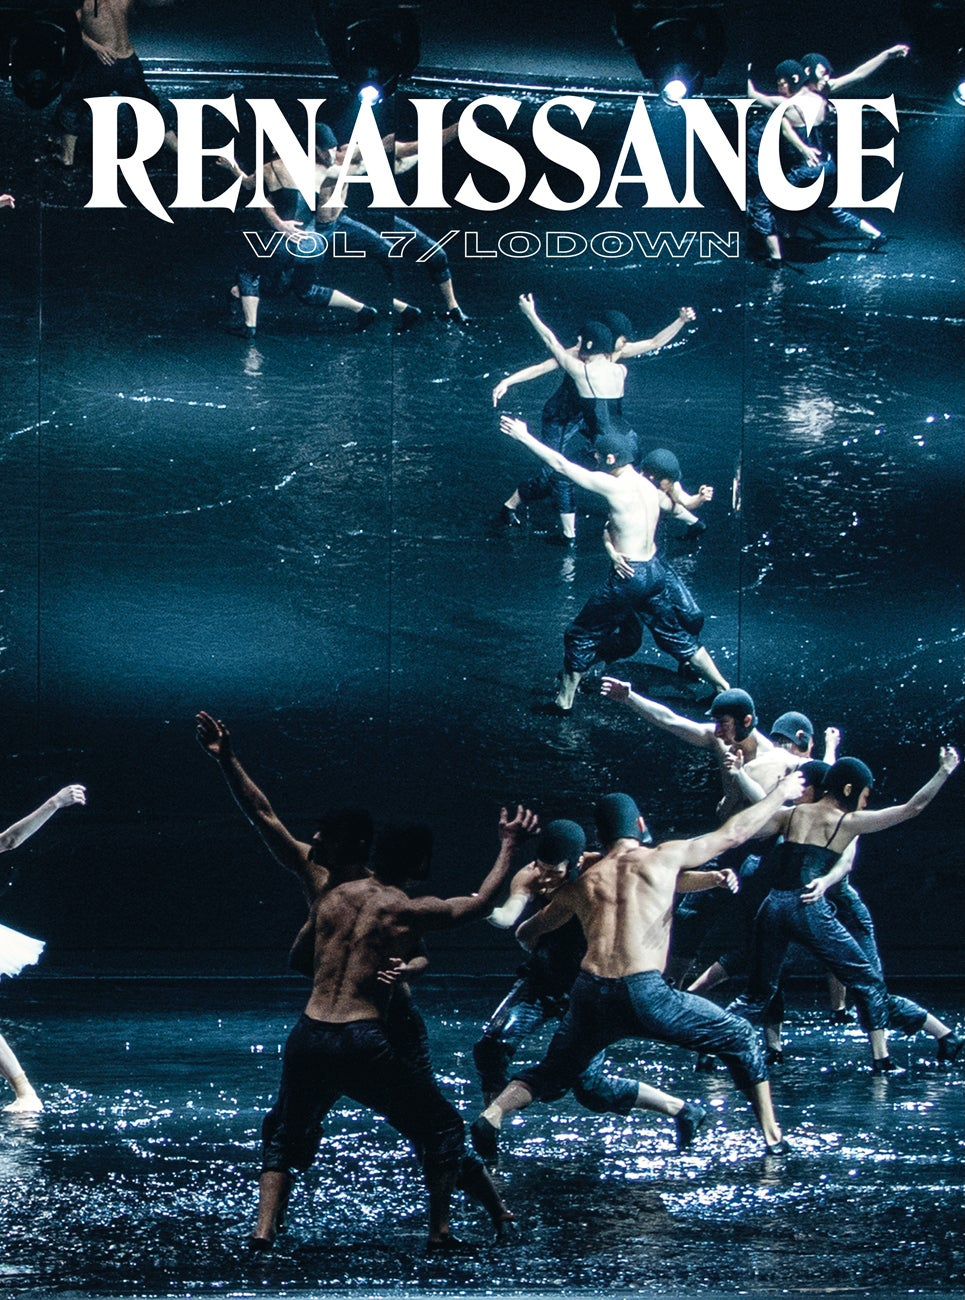 Renaissance - Art Issue 007